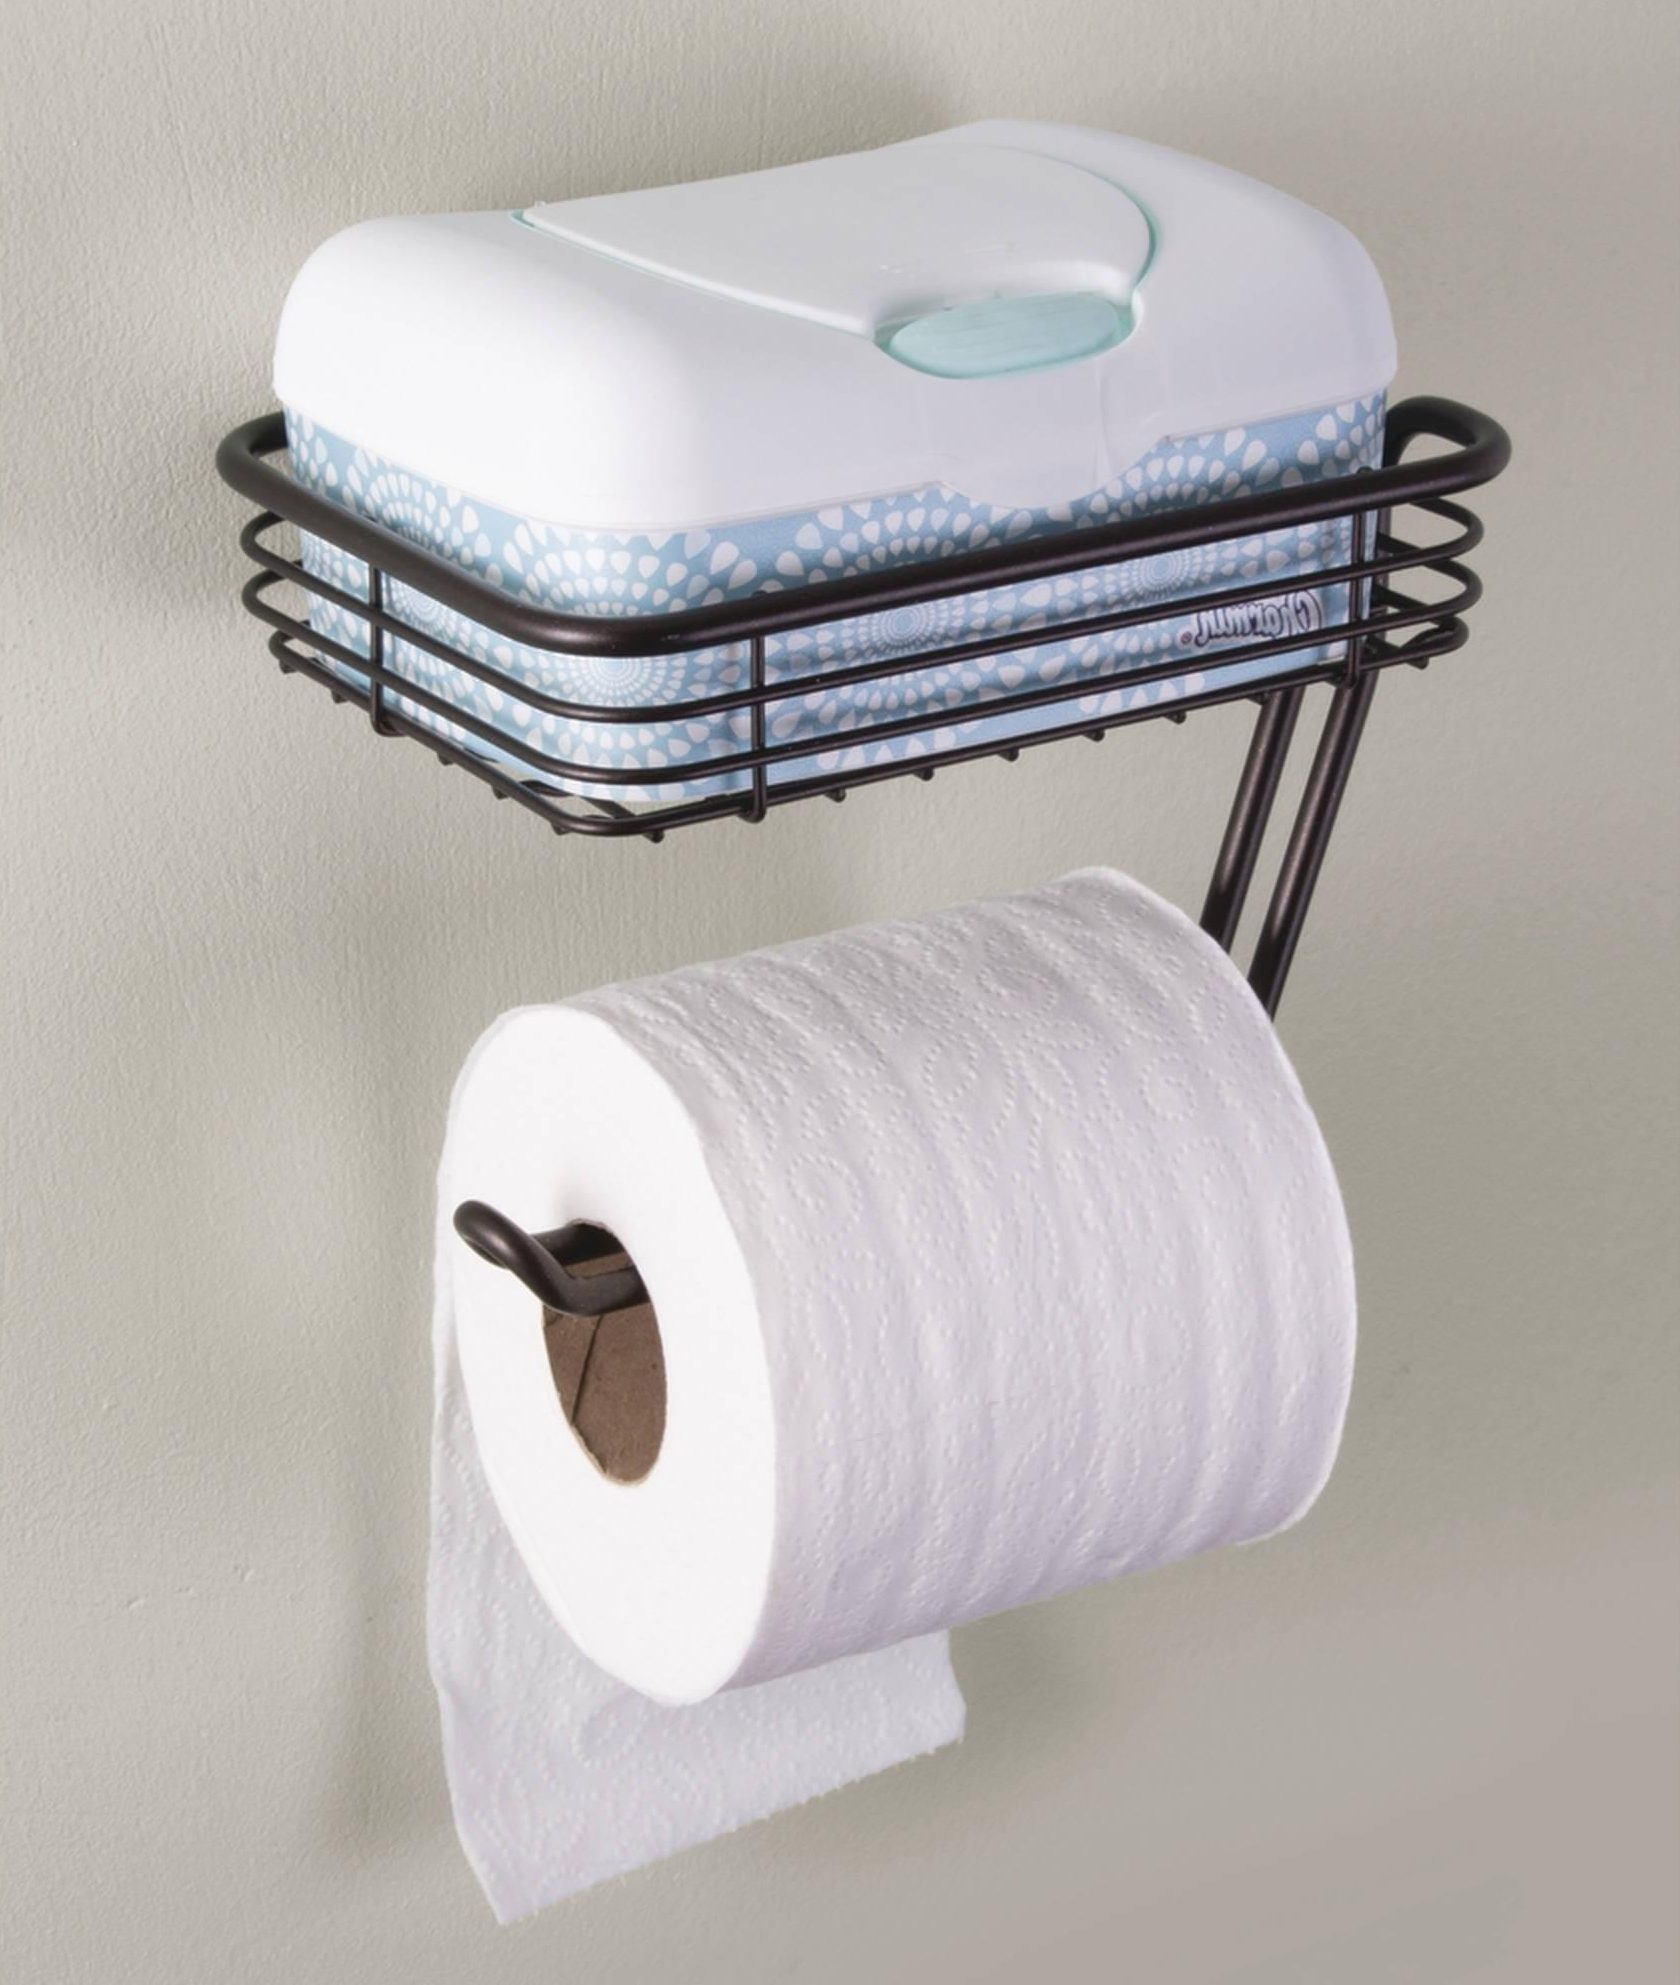 Low Budget Toilet Paper Holder Pictures Gallery